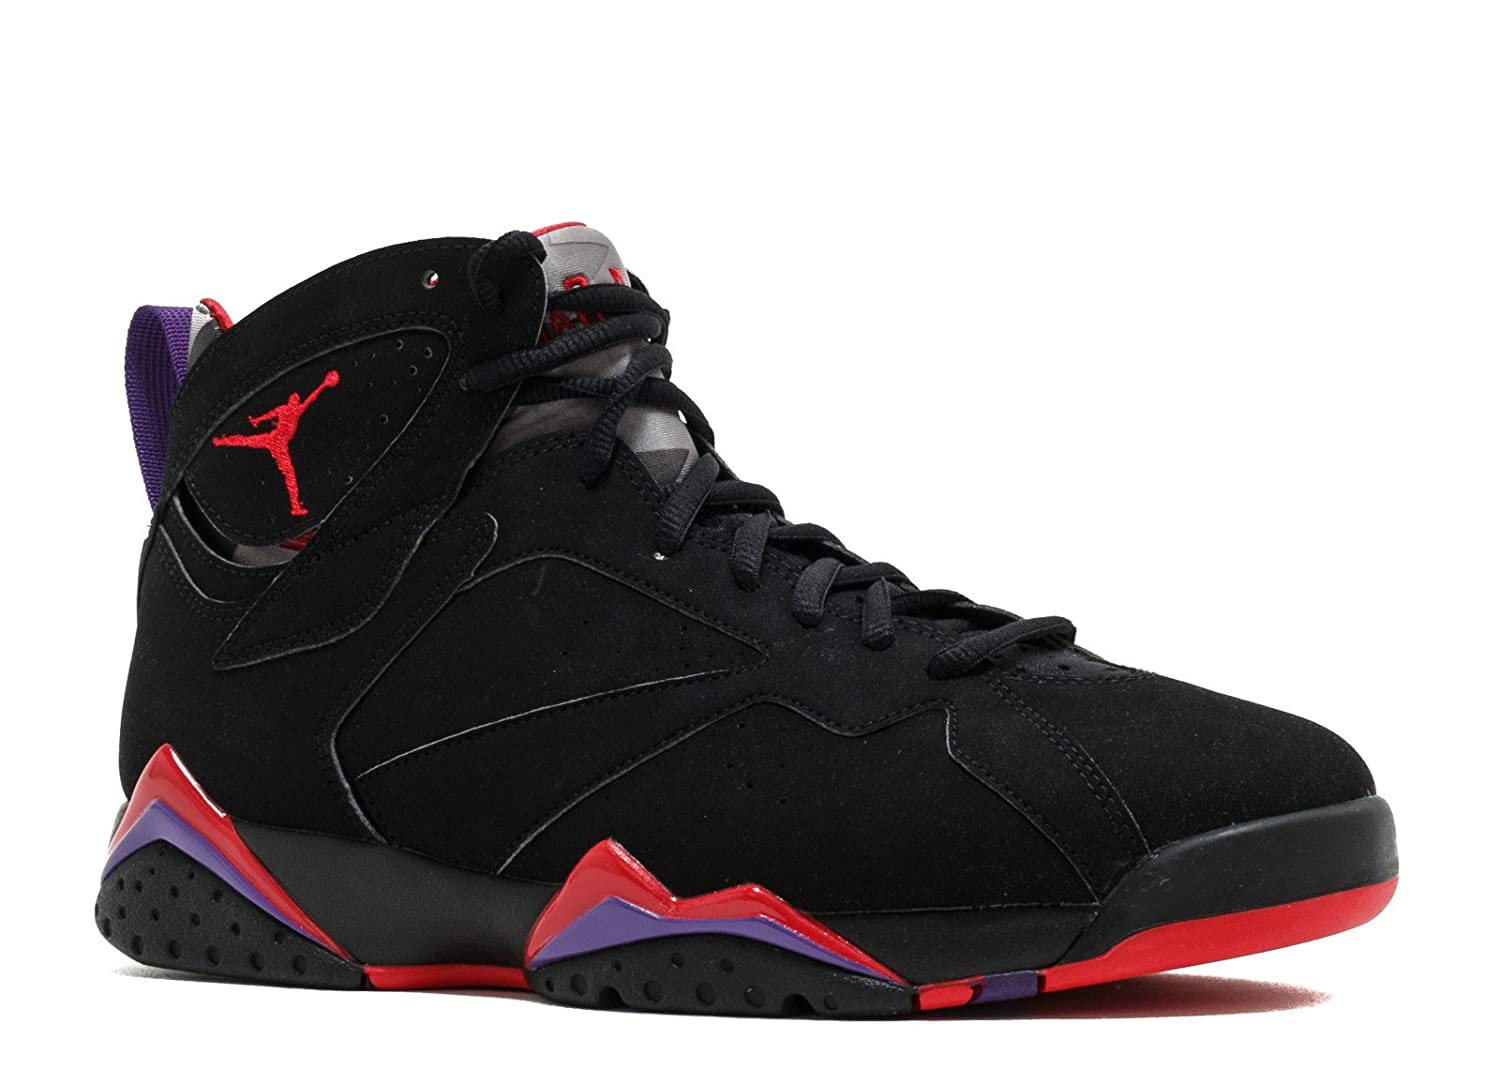 Nike Mens Air Jordan 7 Retro Raptor Black/True Red-Dark Charcoal-Purple Leather Basketball Shoes Size 10